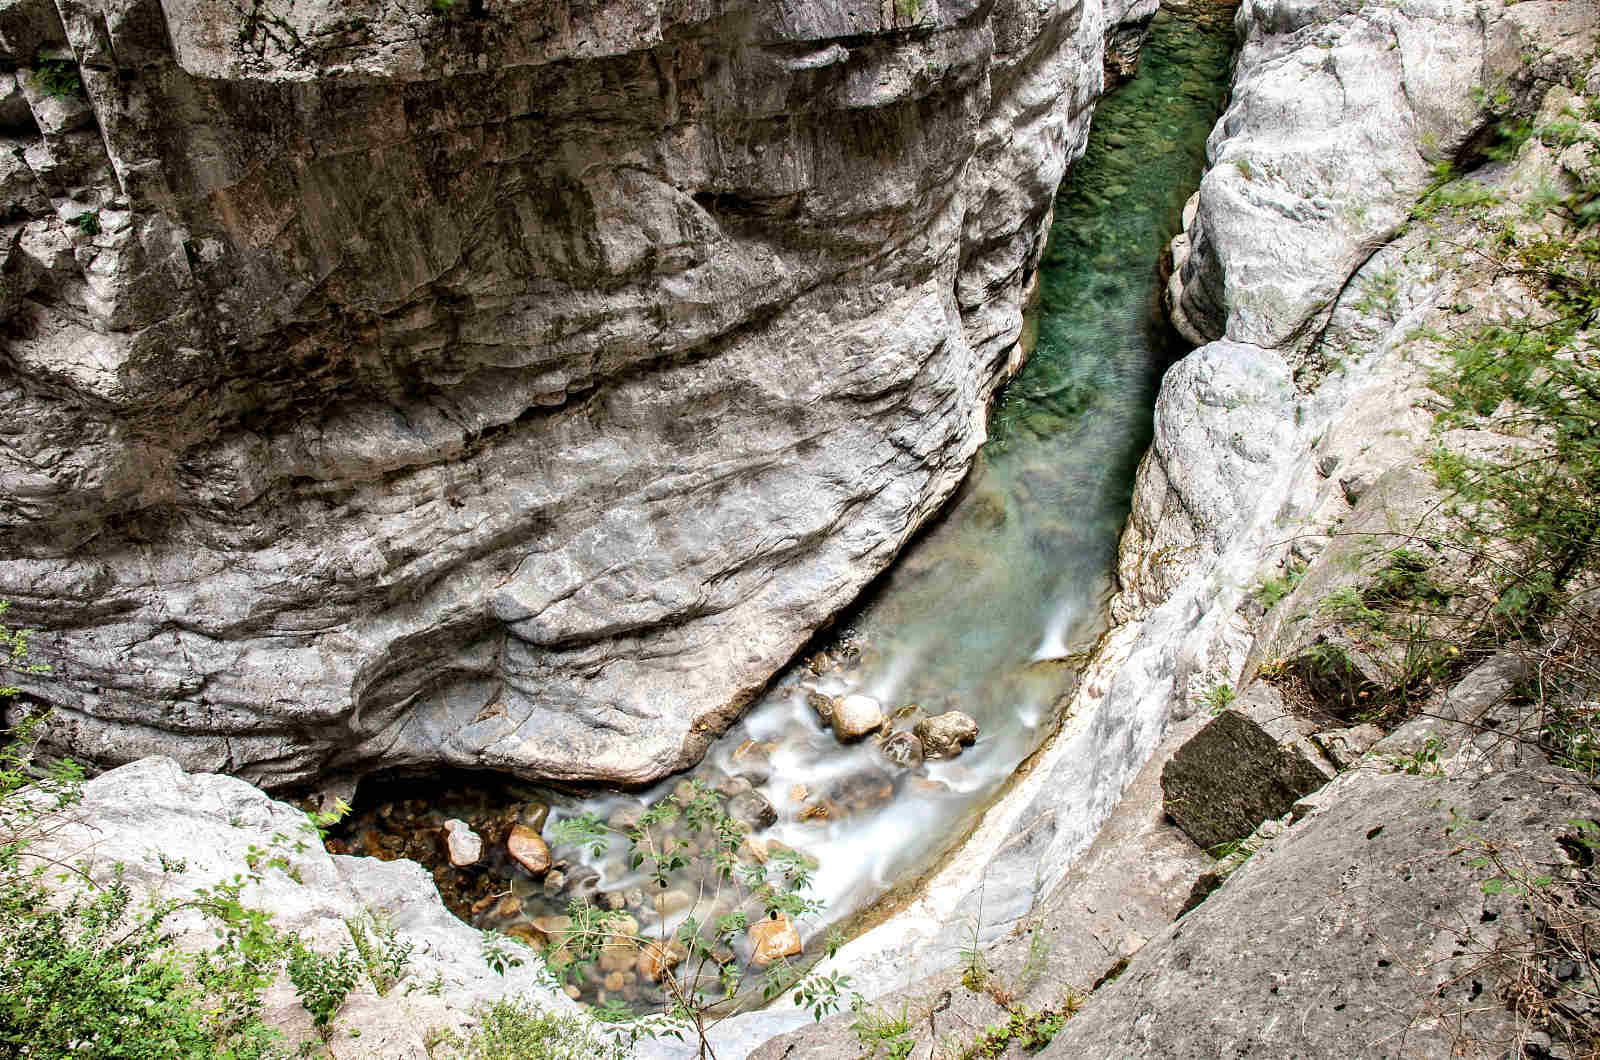 A photo of the river Bellos in the Spanish Pyrenees which has carved through the limestone rock photo taken on our Photography Holiday Spain